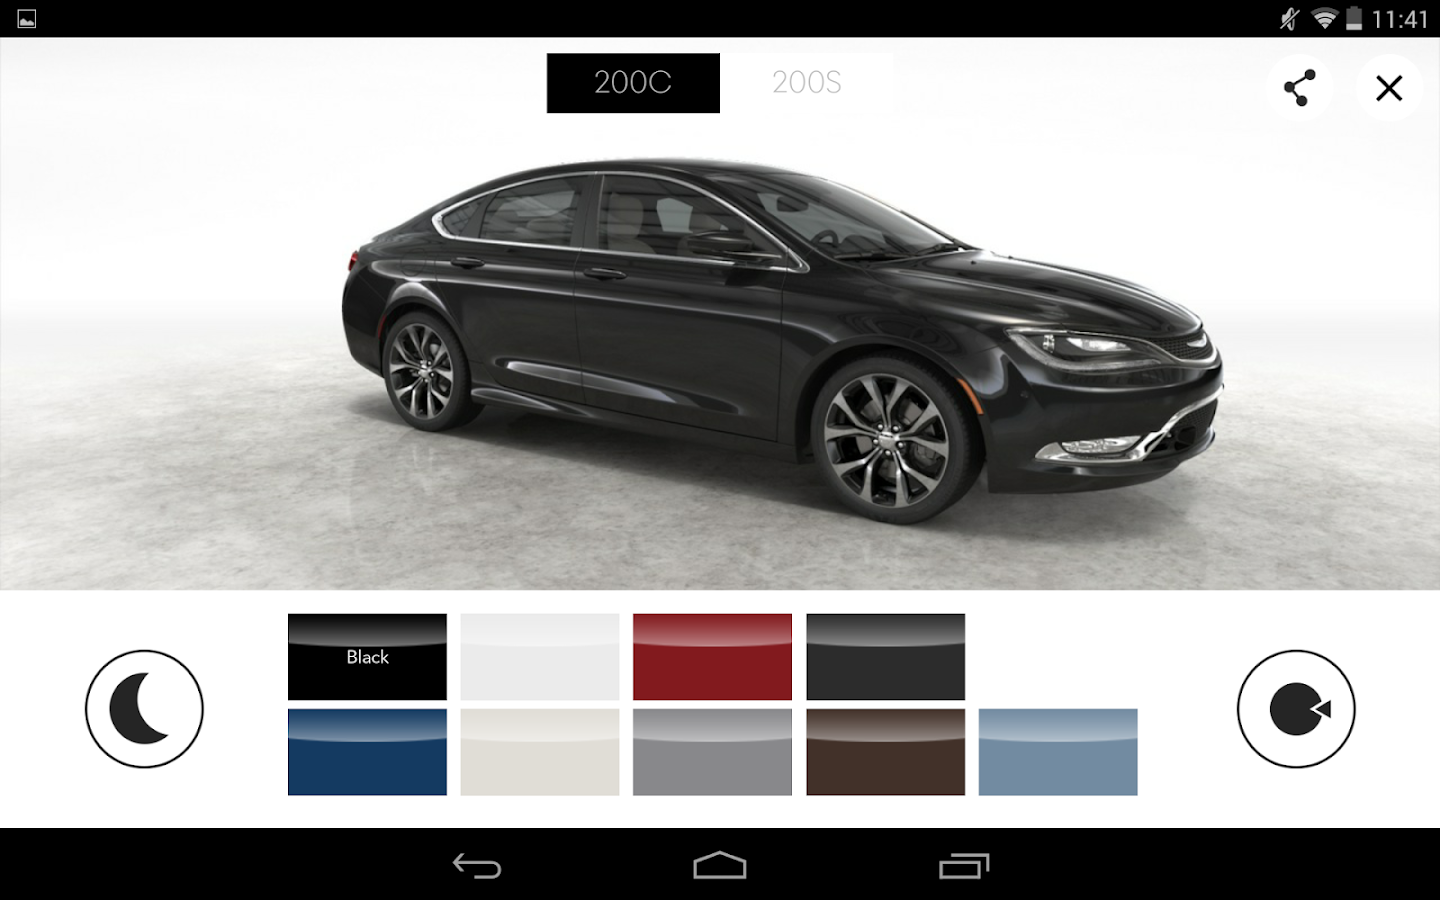 The 2015 Chrysler 200- screenshot